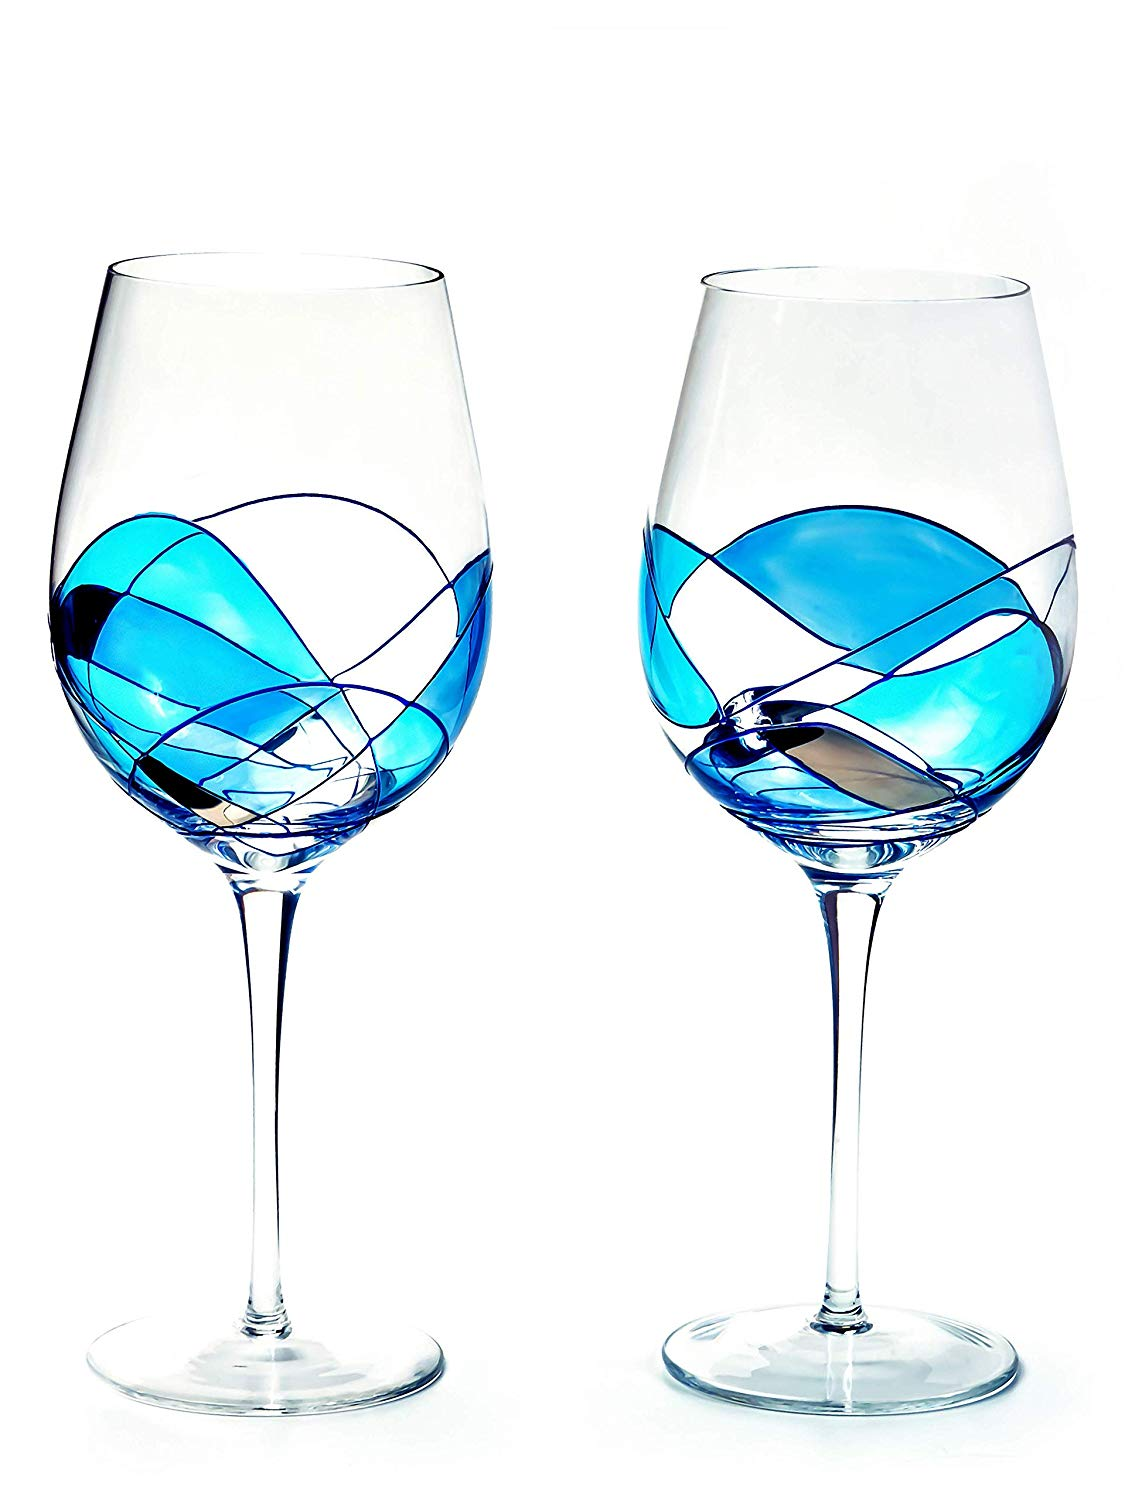 ANTONI BARCELONA Large Wine Glasses Set of 2 (29 Oz) - Handblown & Handmade, Painted Blue Wine Glass, Gifts for Women, Birthdays, Anniversaries, and Weddings - 2 Units (2 BLUE)